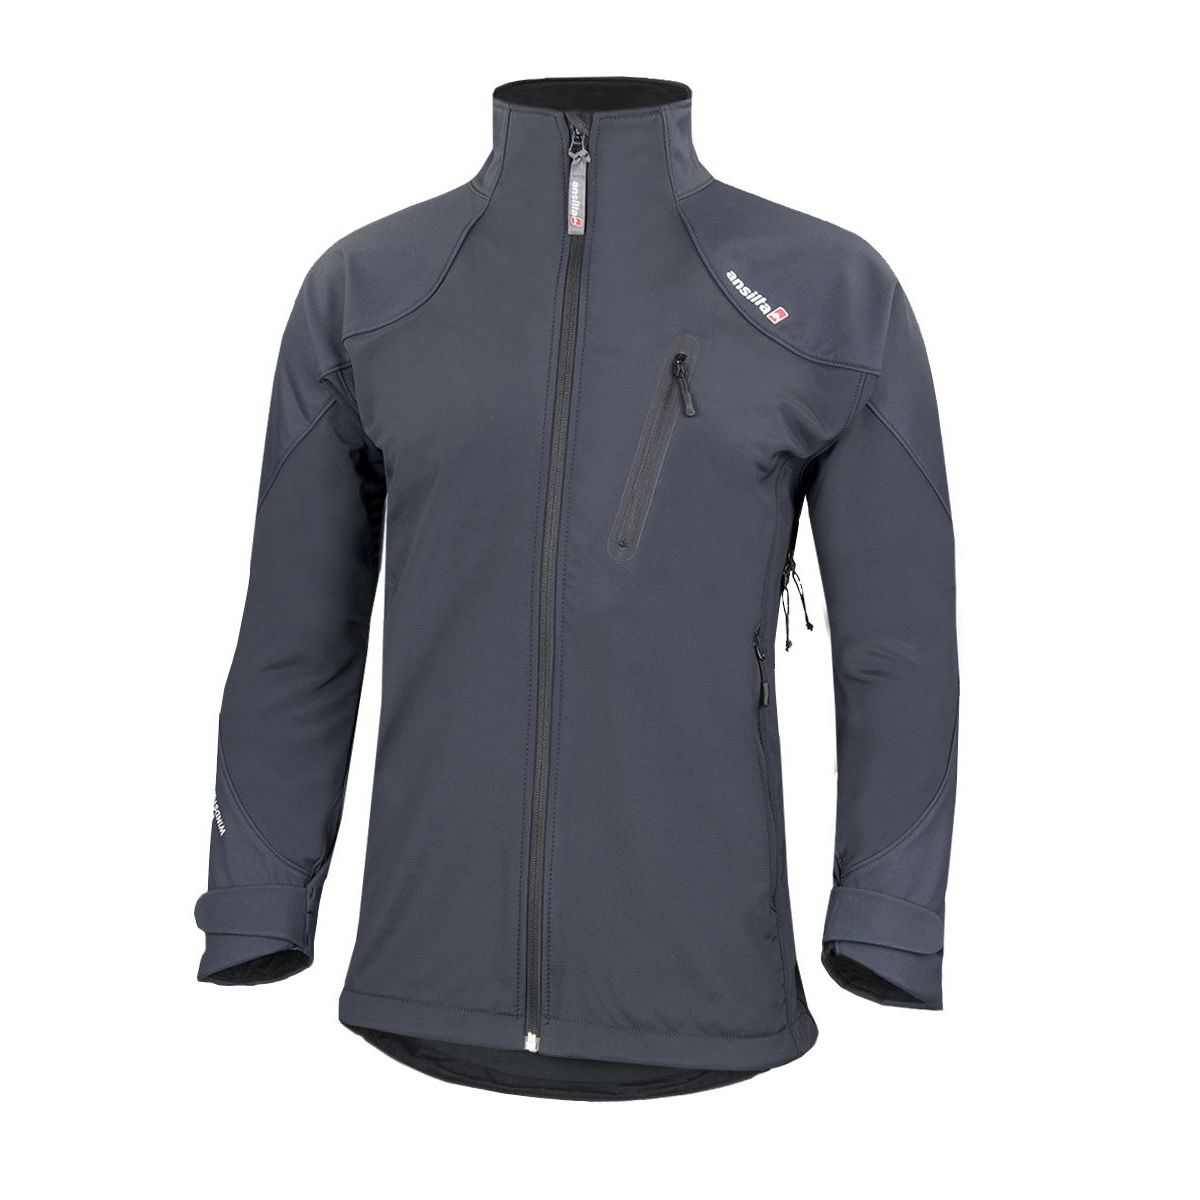 Ansilta Raptor Windstopper